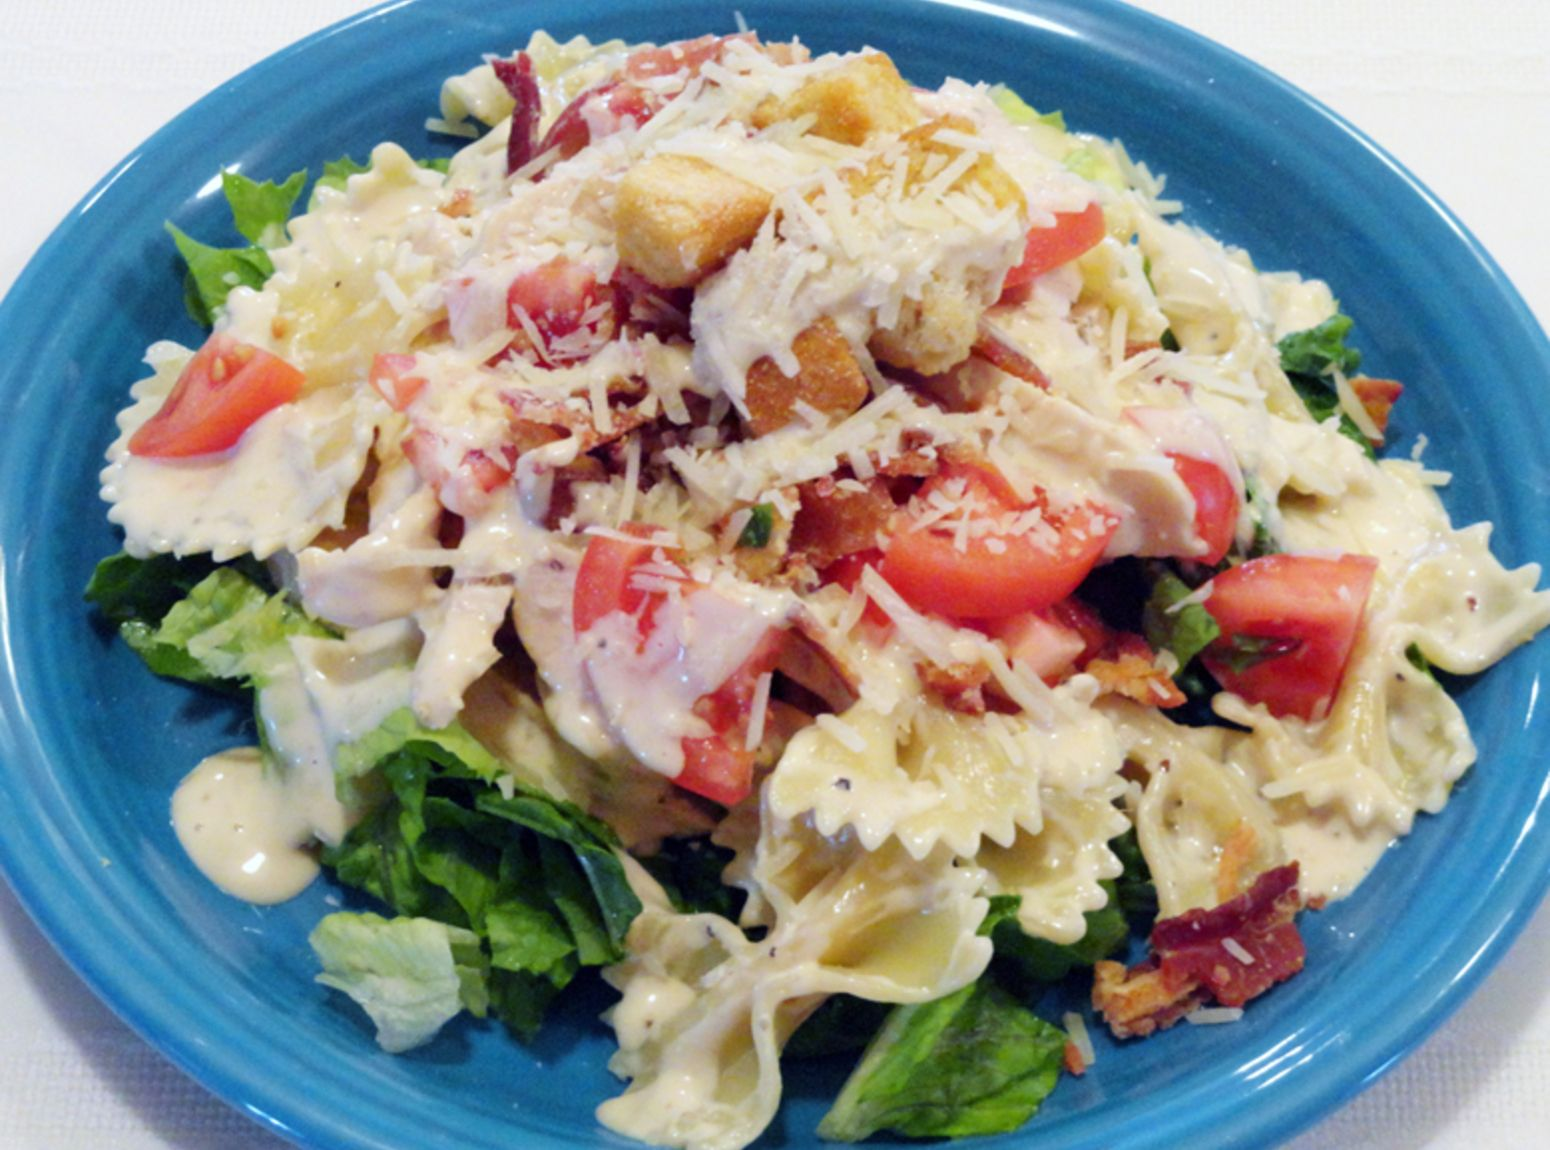 Chicken Caesar Pasta Salad - recipe from Just A Pinch cook Fran Miller - get yourself over to this site and enjoy all the fabulous recipes.  You will surely become lost in the drool worthy recipes.  Ollie B